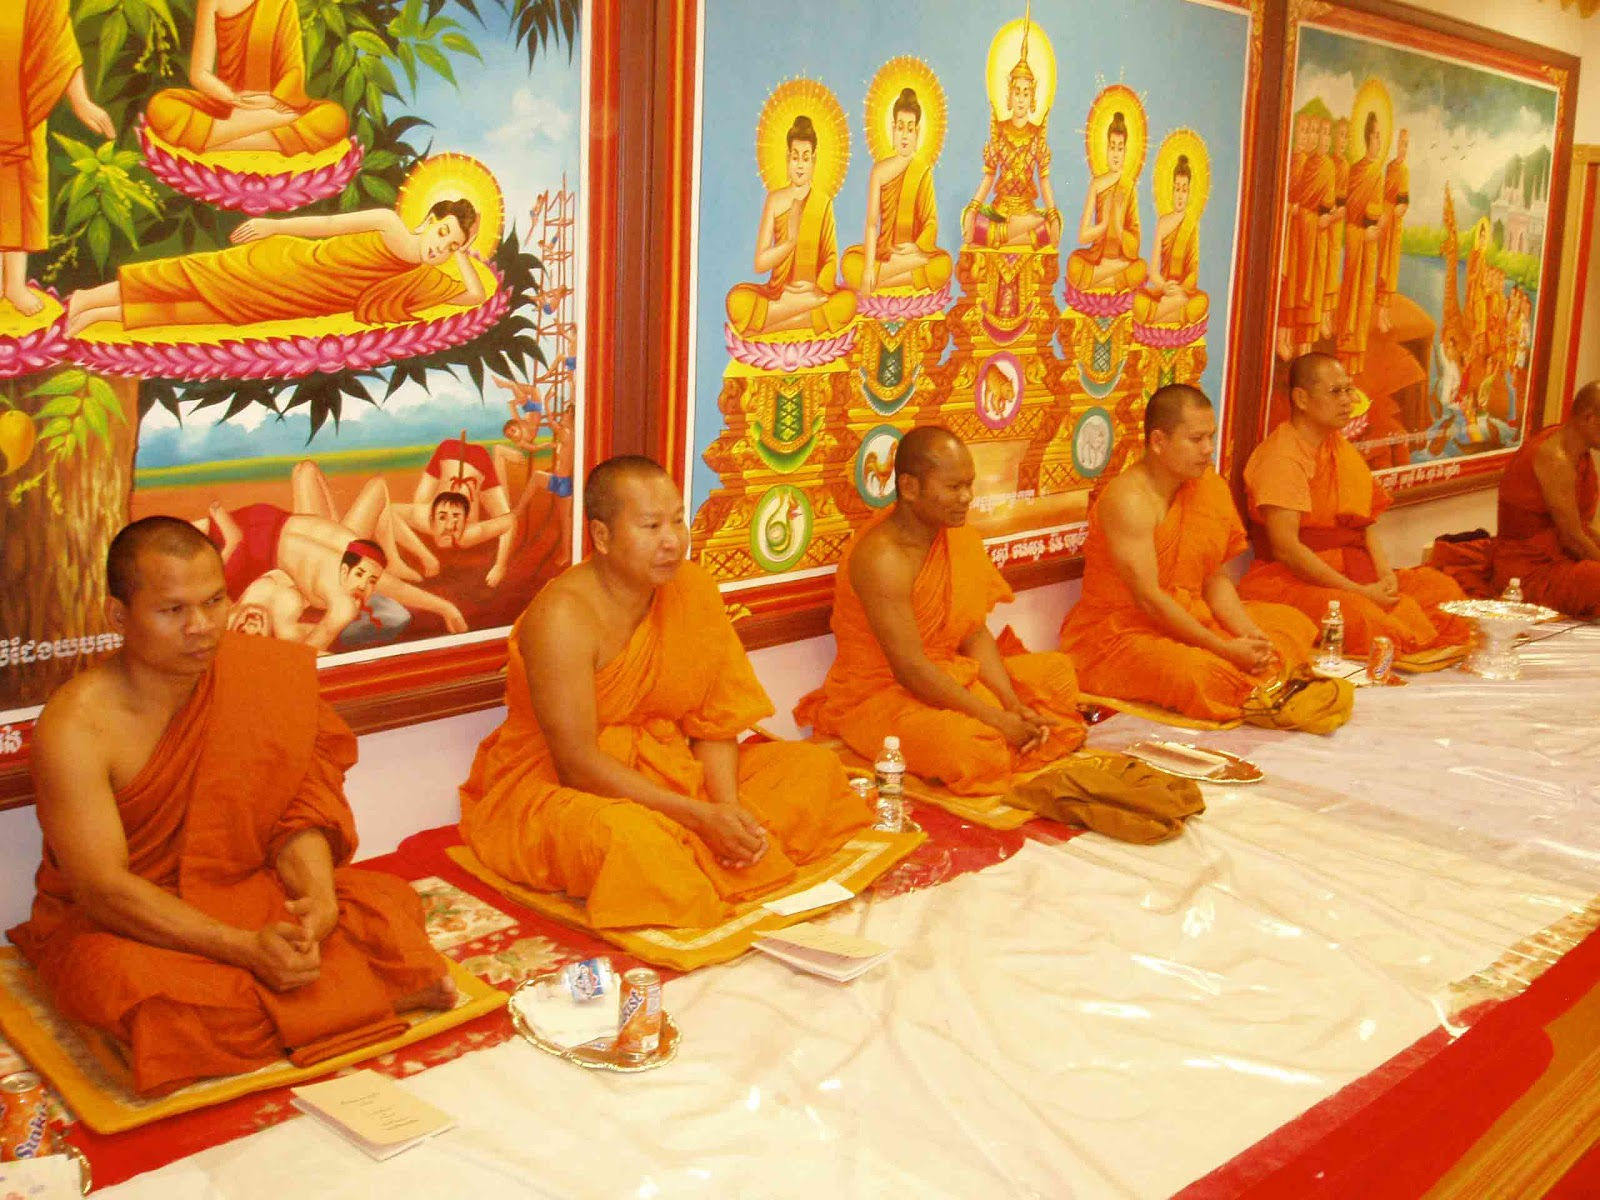 http://www.thelocaleventsguide.com/wp-content/uploads/2015/10/ceremonie-dns-une-pagode-pchum-ben.jpg